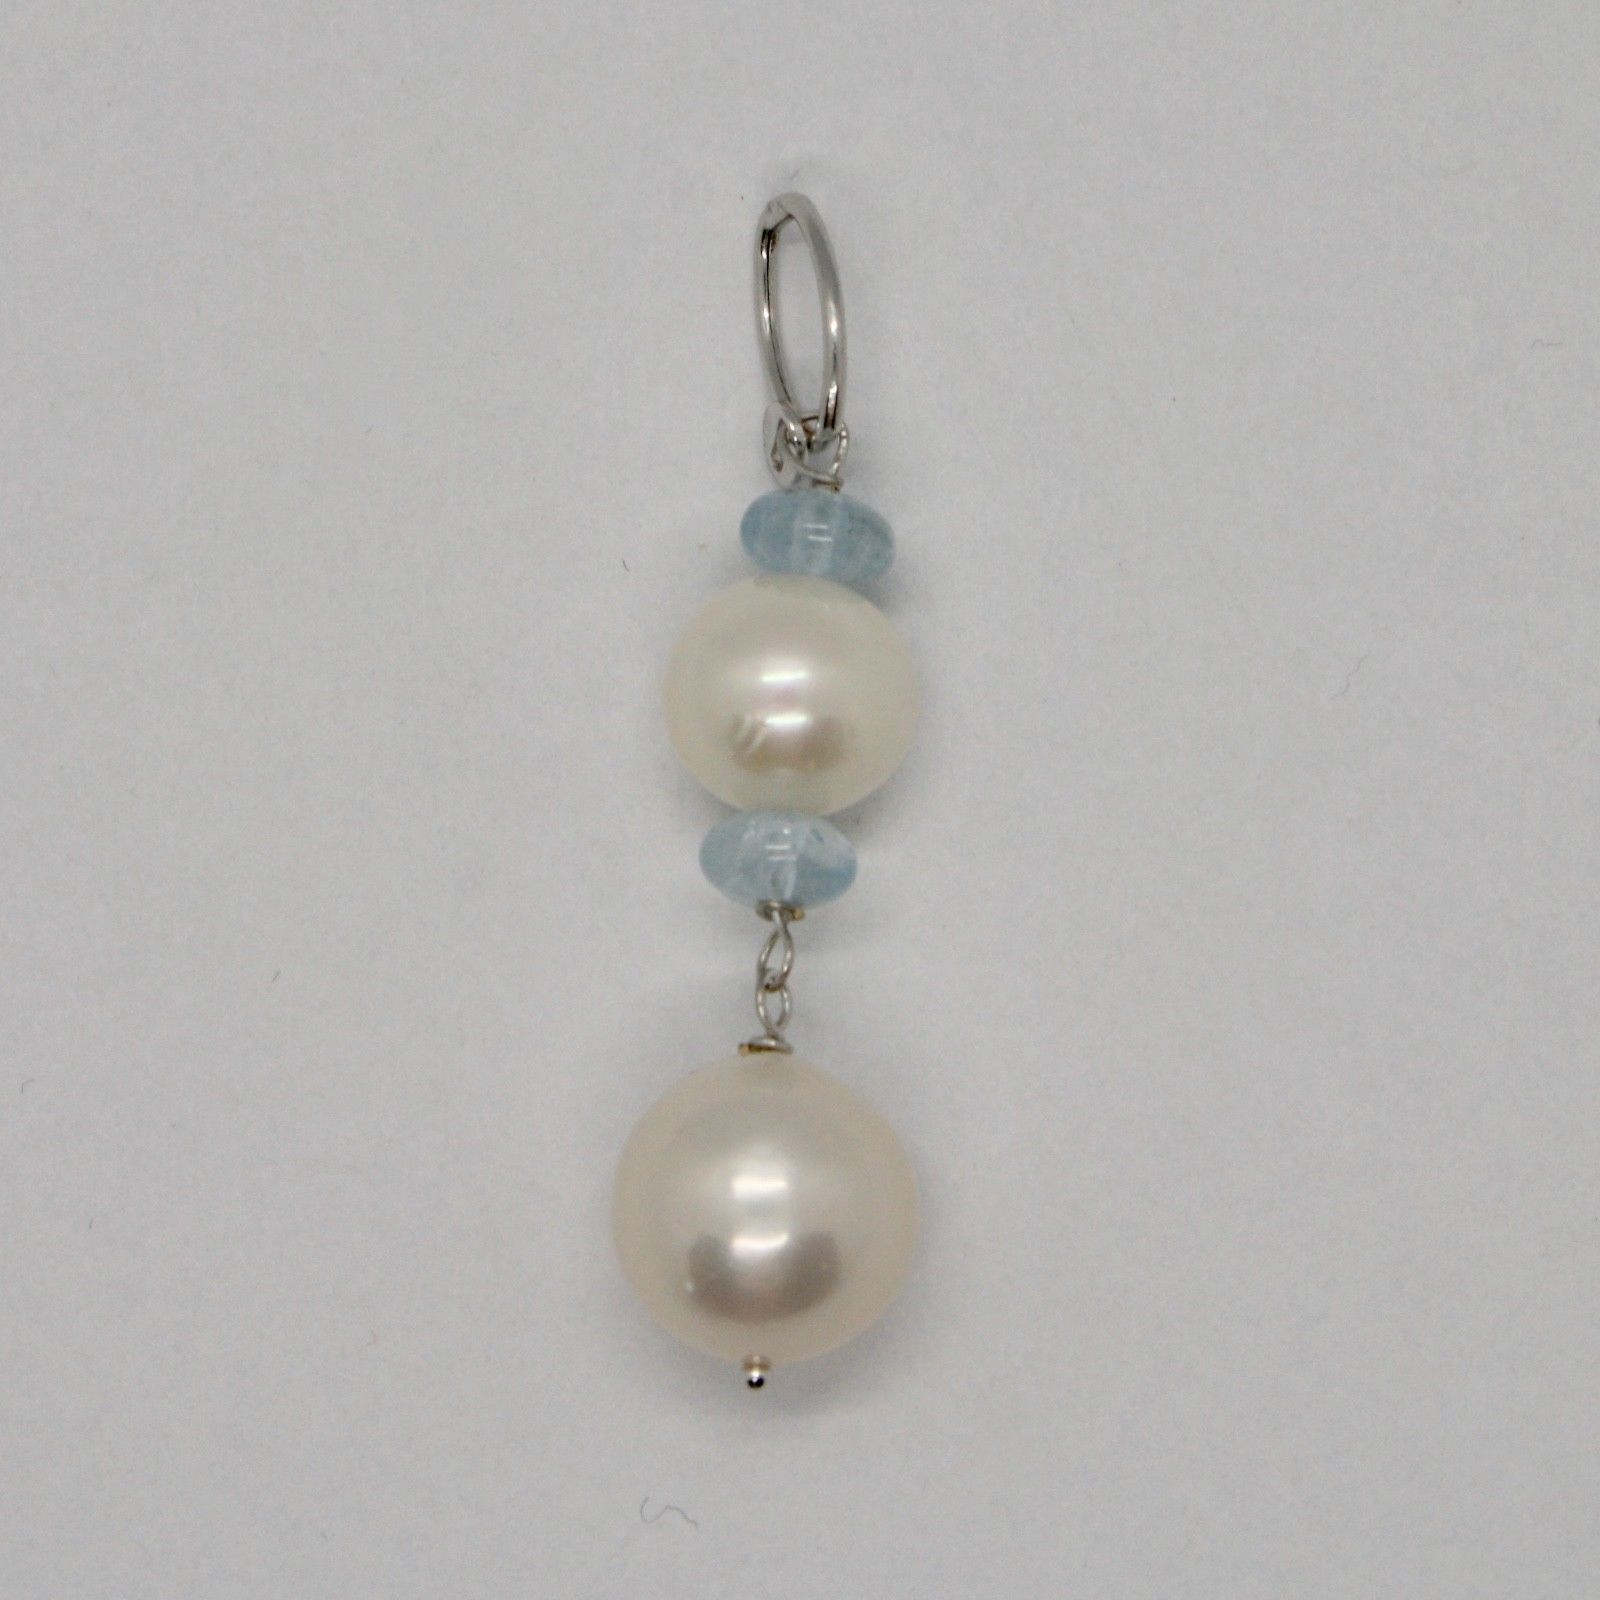 PENDANT WHITE GOLD 18K 750 WITH WHITE PEARLS FRESH WATER AND AQUAMARINE